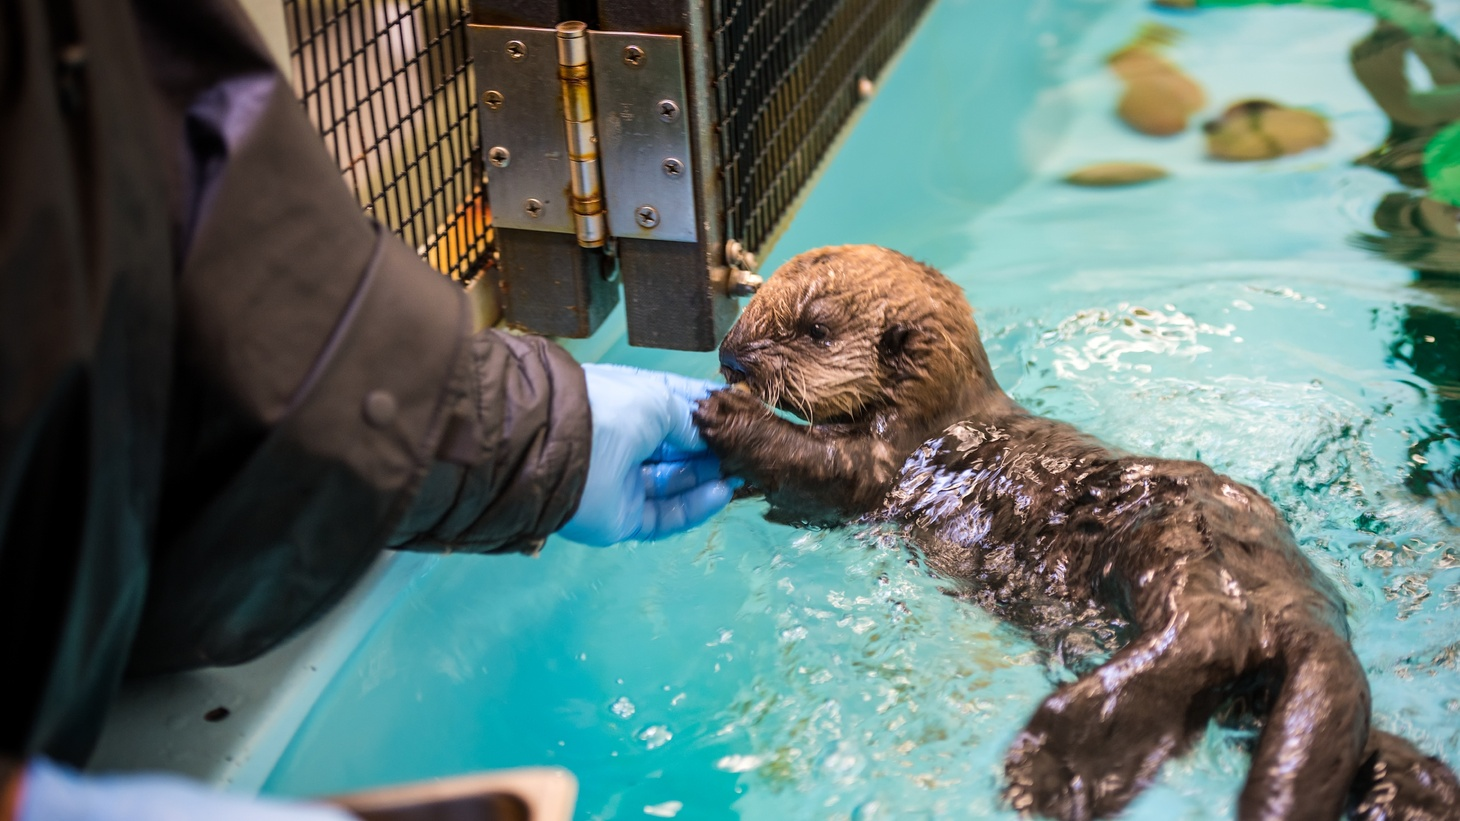 Southern sea otter pup 719 behind the scenes with Sea Otter Program staff.